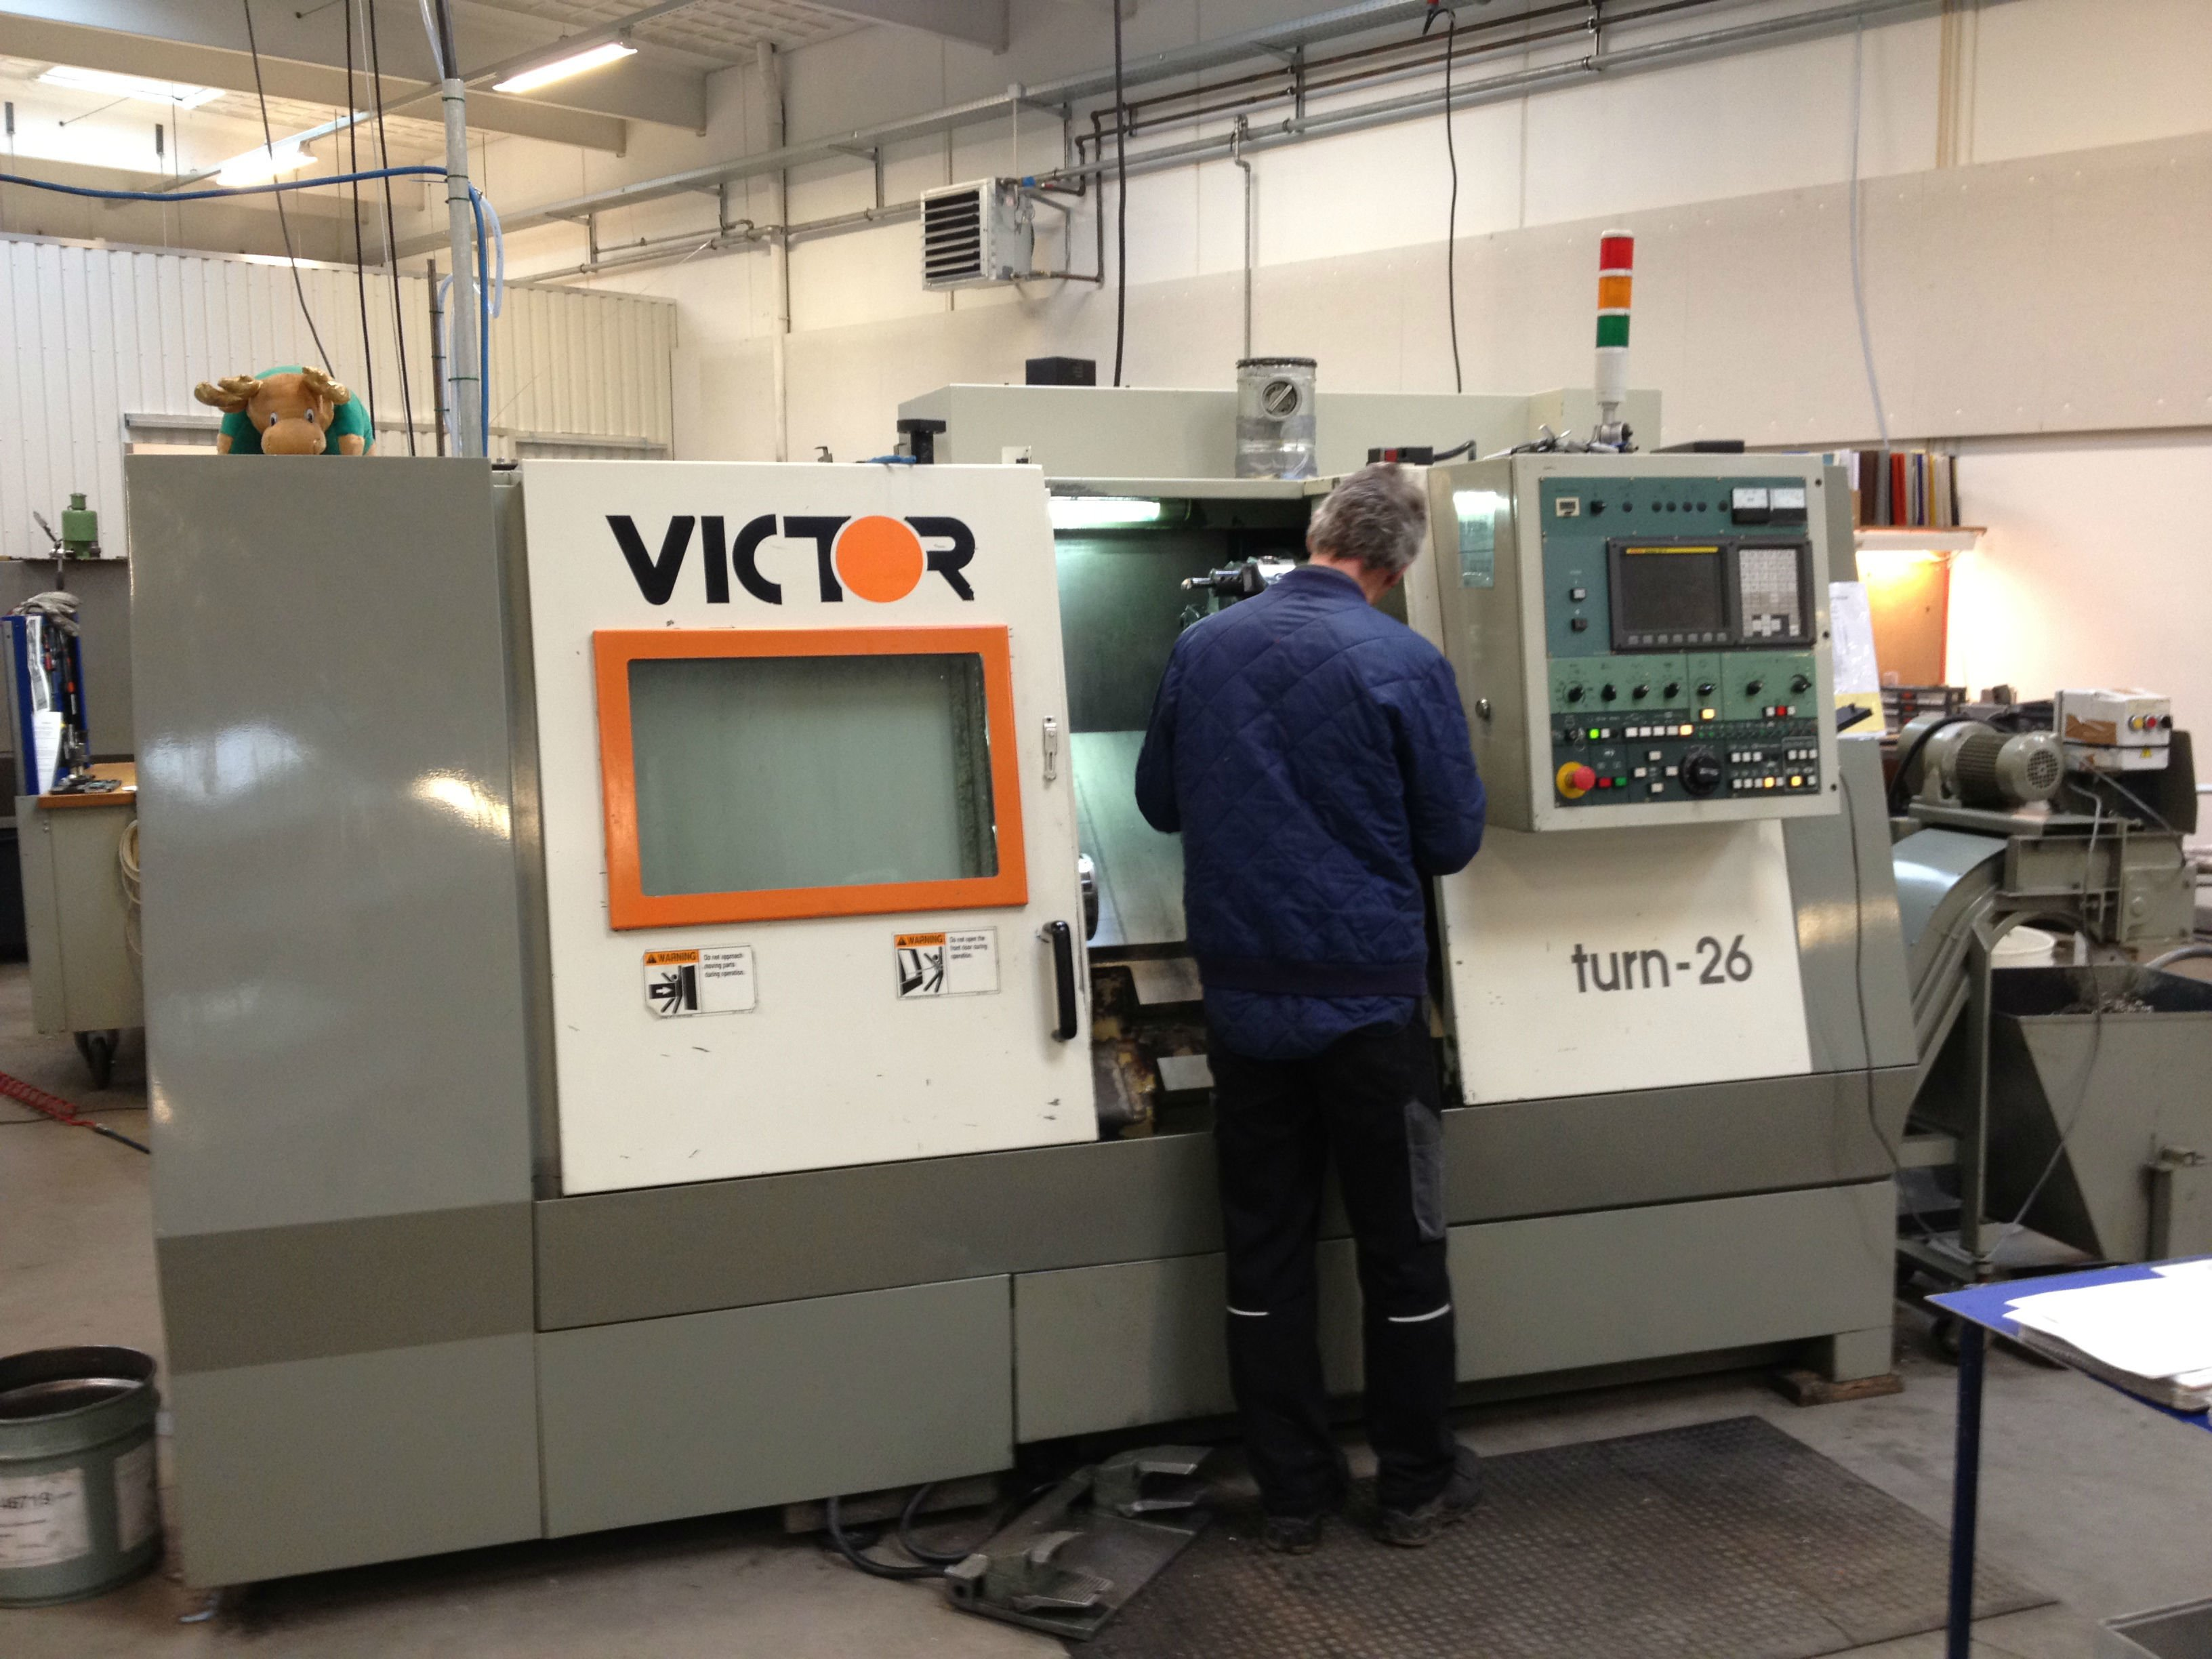 Victor turn-26 CNC machine